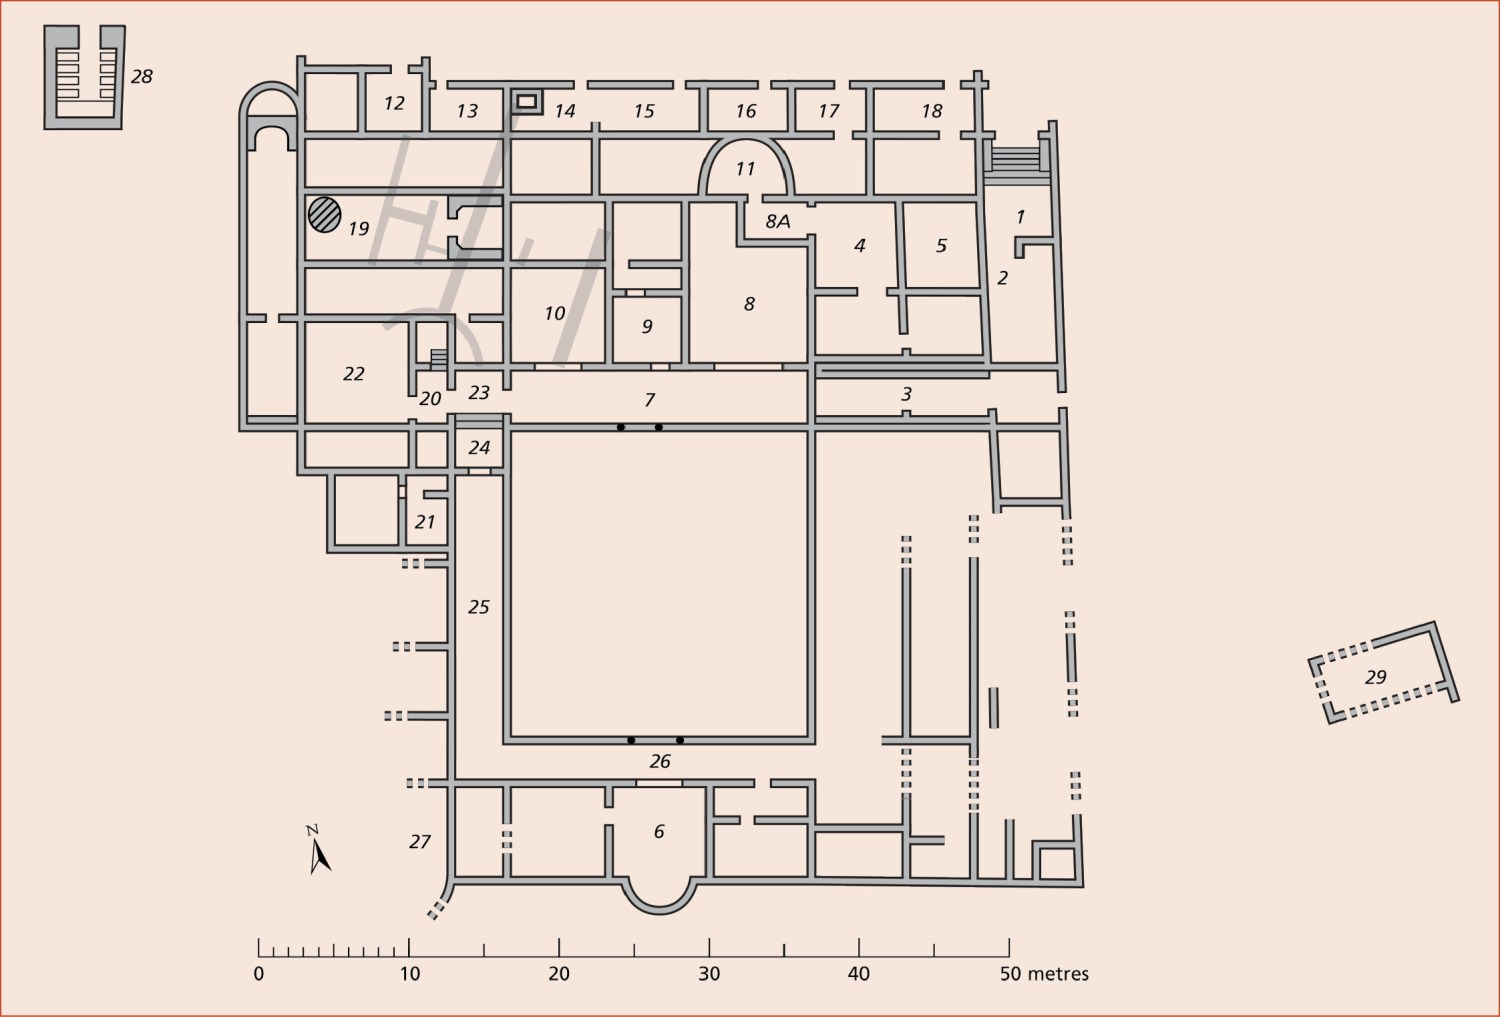 ABOVE The plan of the Caddeddi villa, with room numbers referred to in the text.